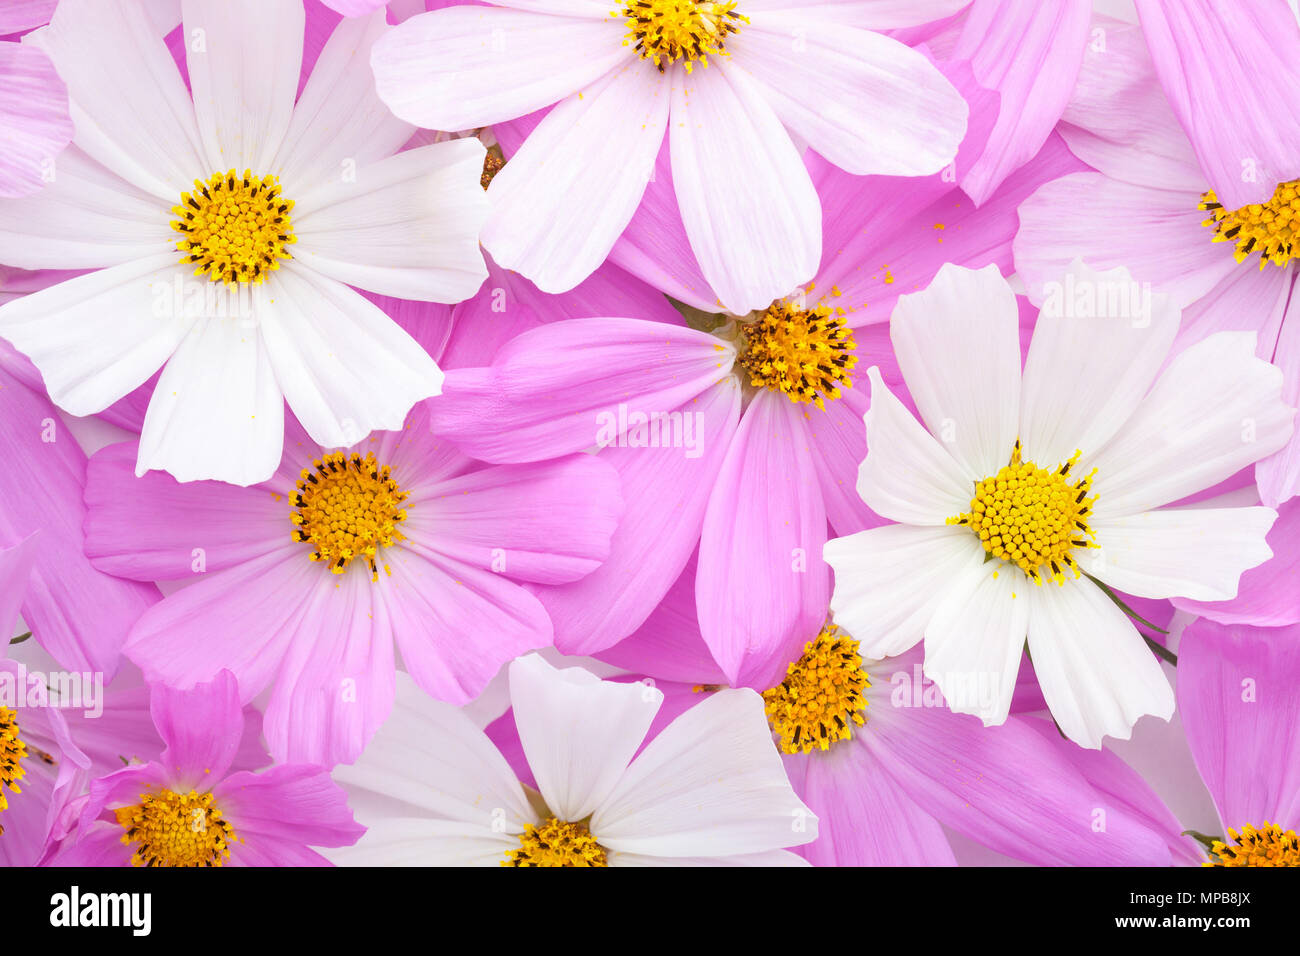 Floral Background Of Light Pink And White Cosmos Flowers Flat Lay